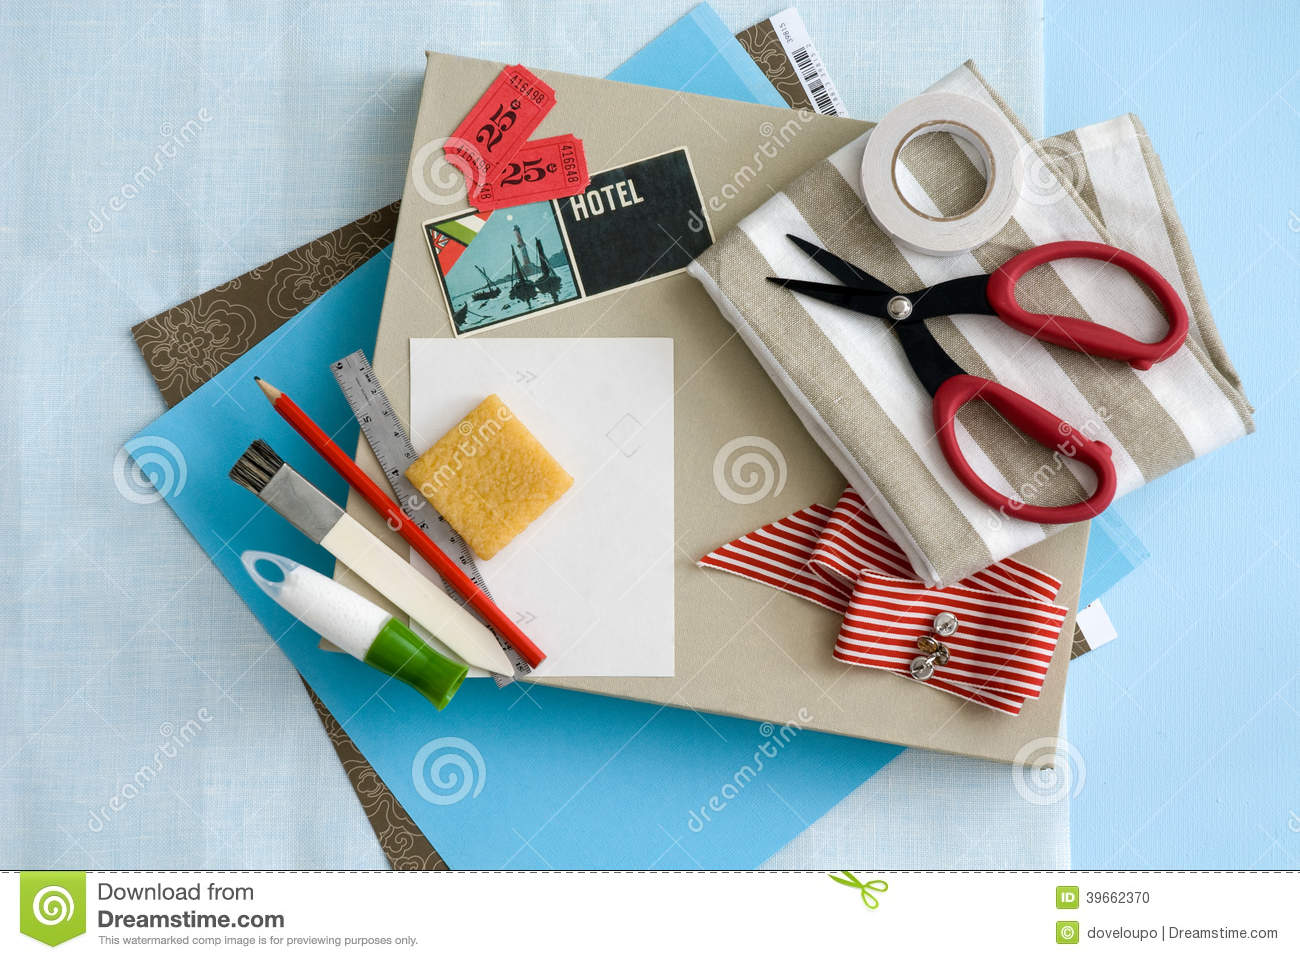 Craft and card stationary supplies stock photo image for Craft supplies for card making